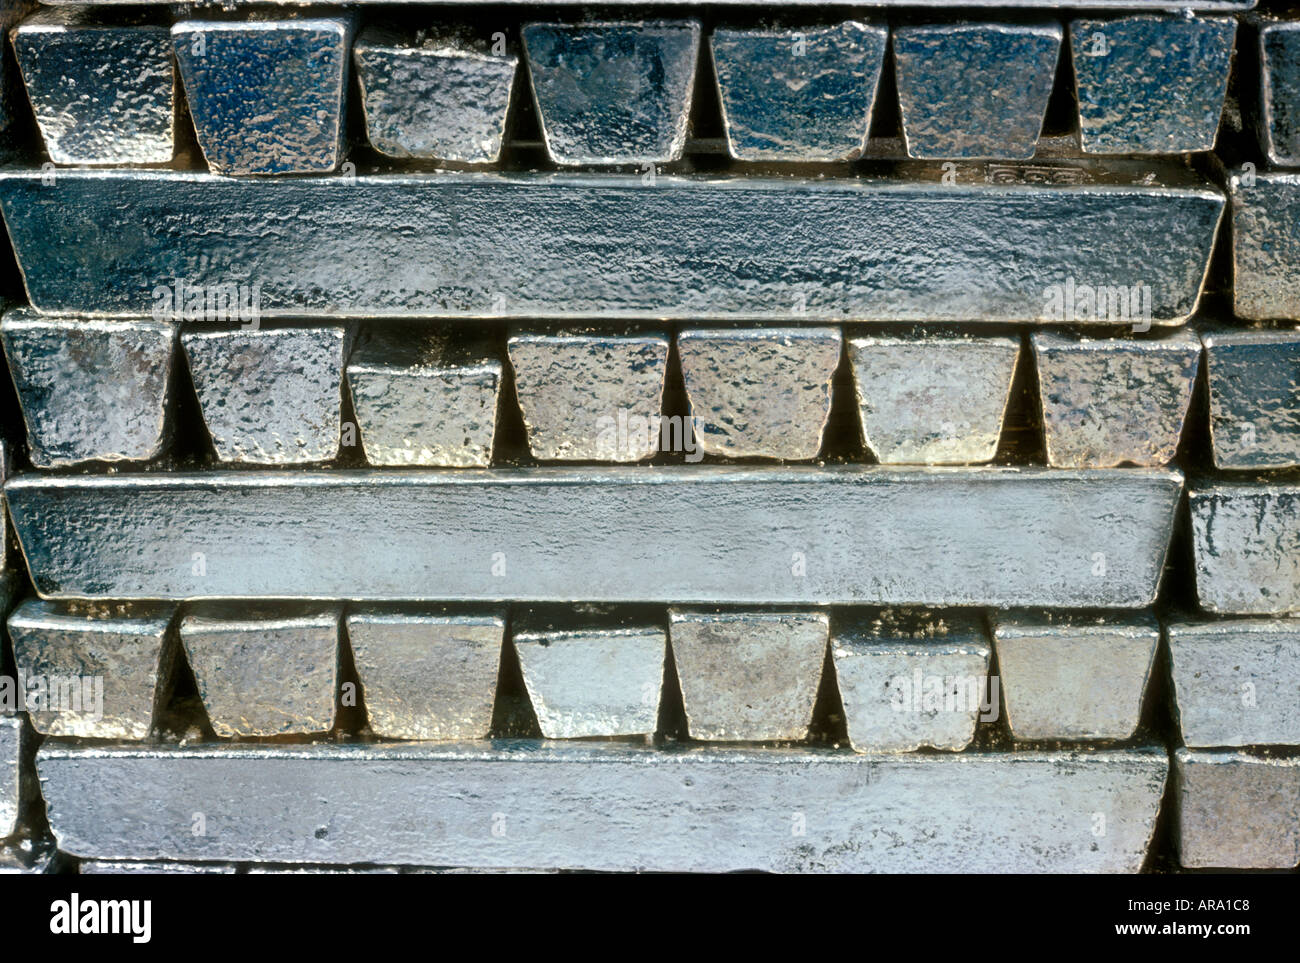 Pure Raw Silver Ingot Bars Stacked In A Secure Bullion